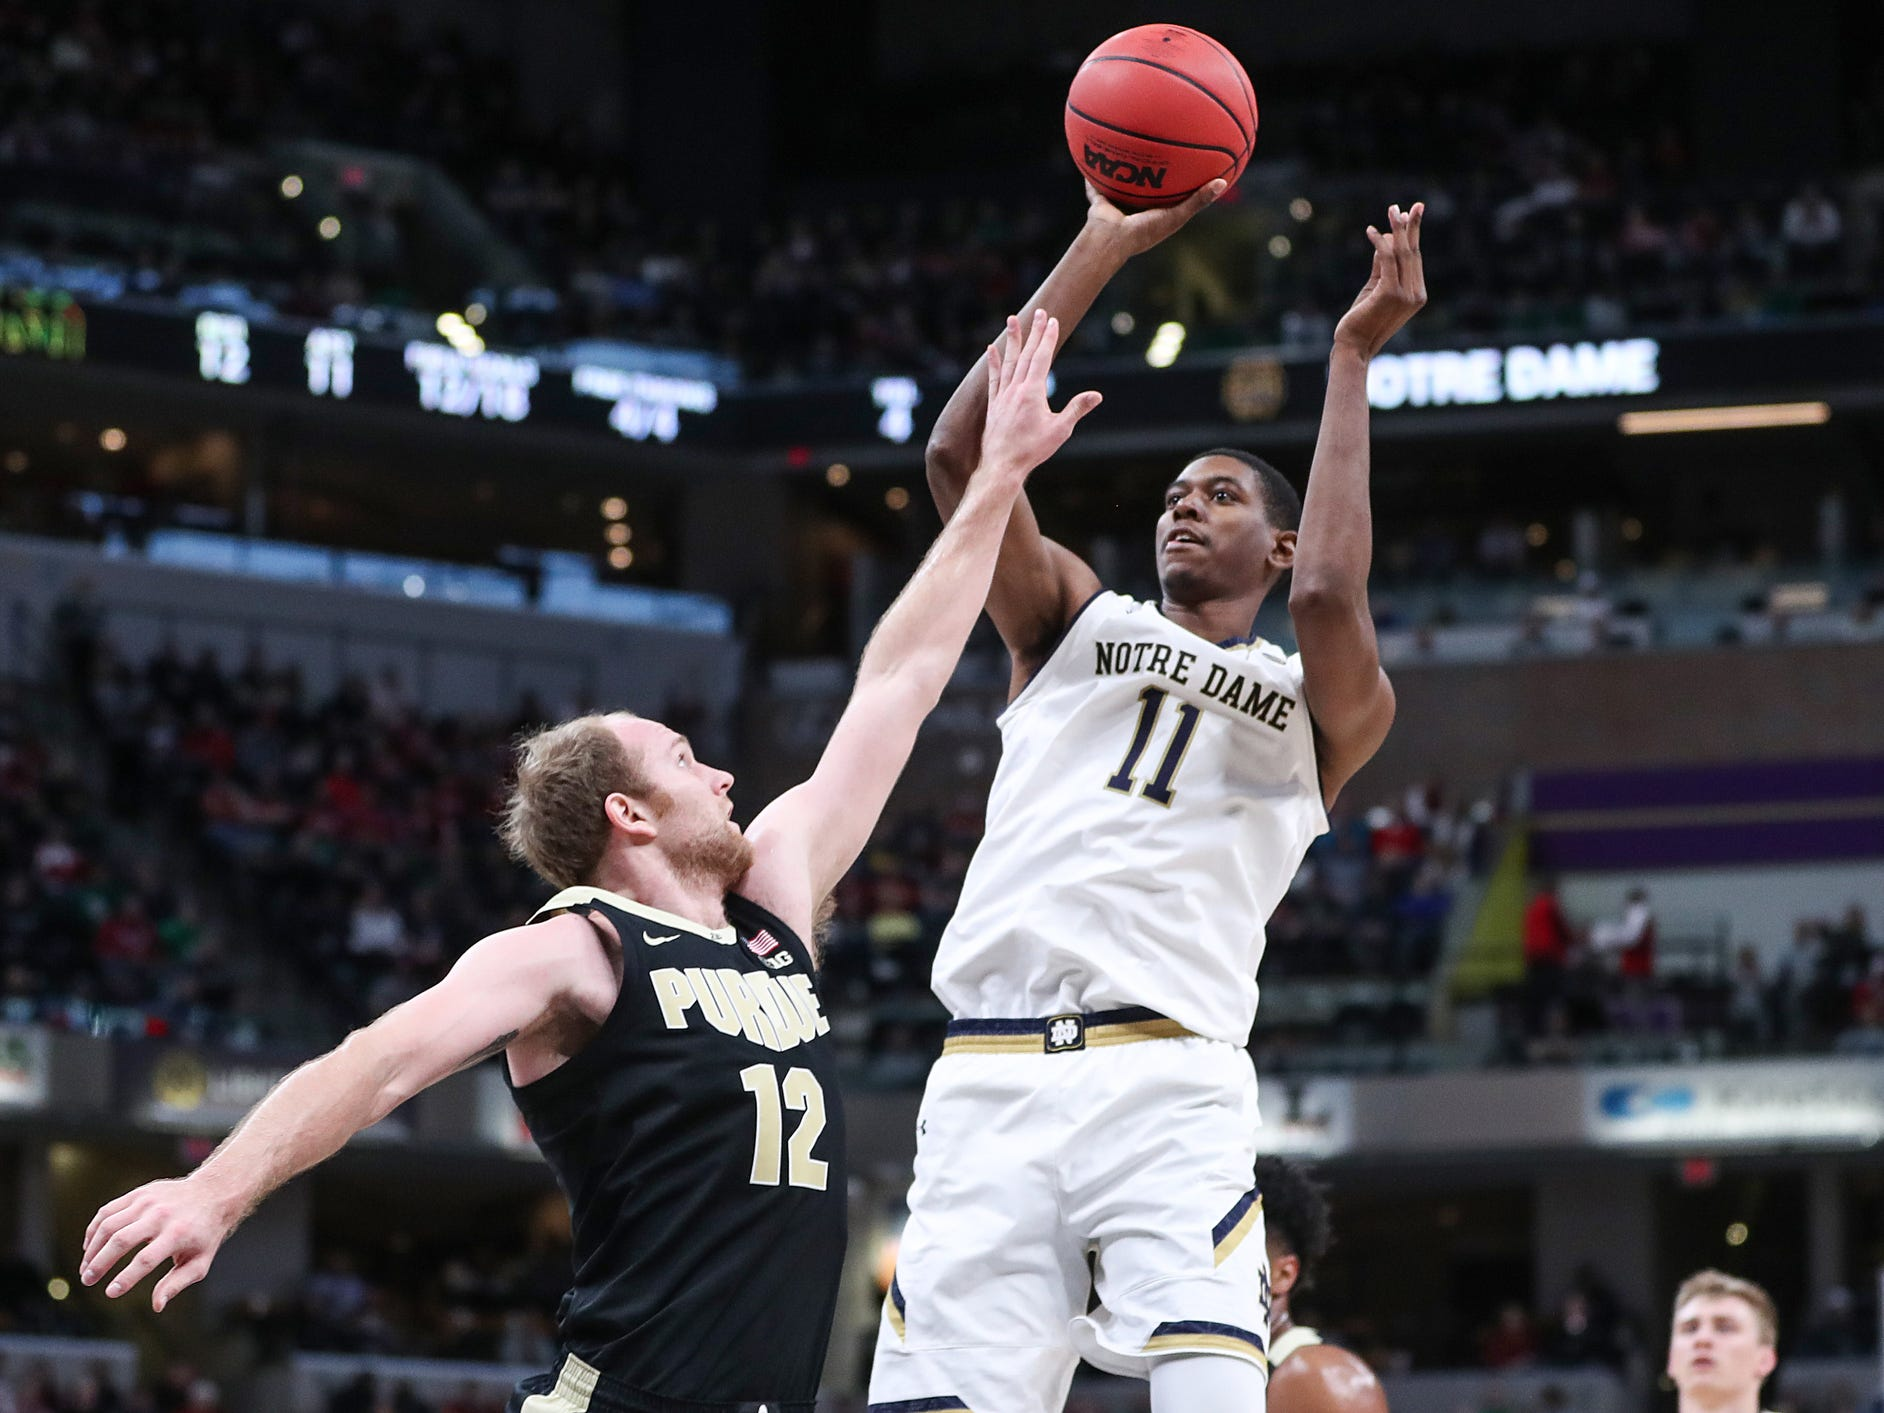 Purdue Boilermakers forward Evan Boudreaux (12) tries to block a shot by Notre Dame Fighting Irish forward Juwan Durham (11) in the first half of the Crossroads Classic game between Purdue and Notre Dame at Banker's Life Fieldhouse in Indianapolis, Saturday, Dec. 15, 2018.